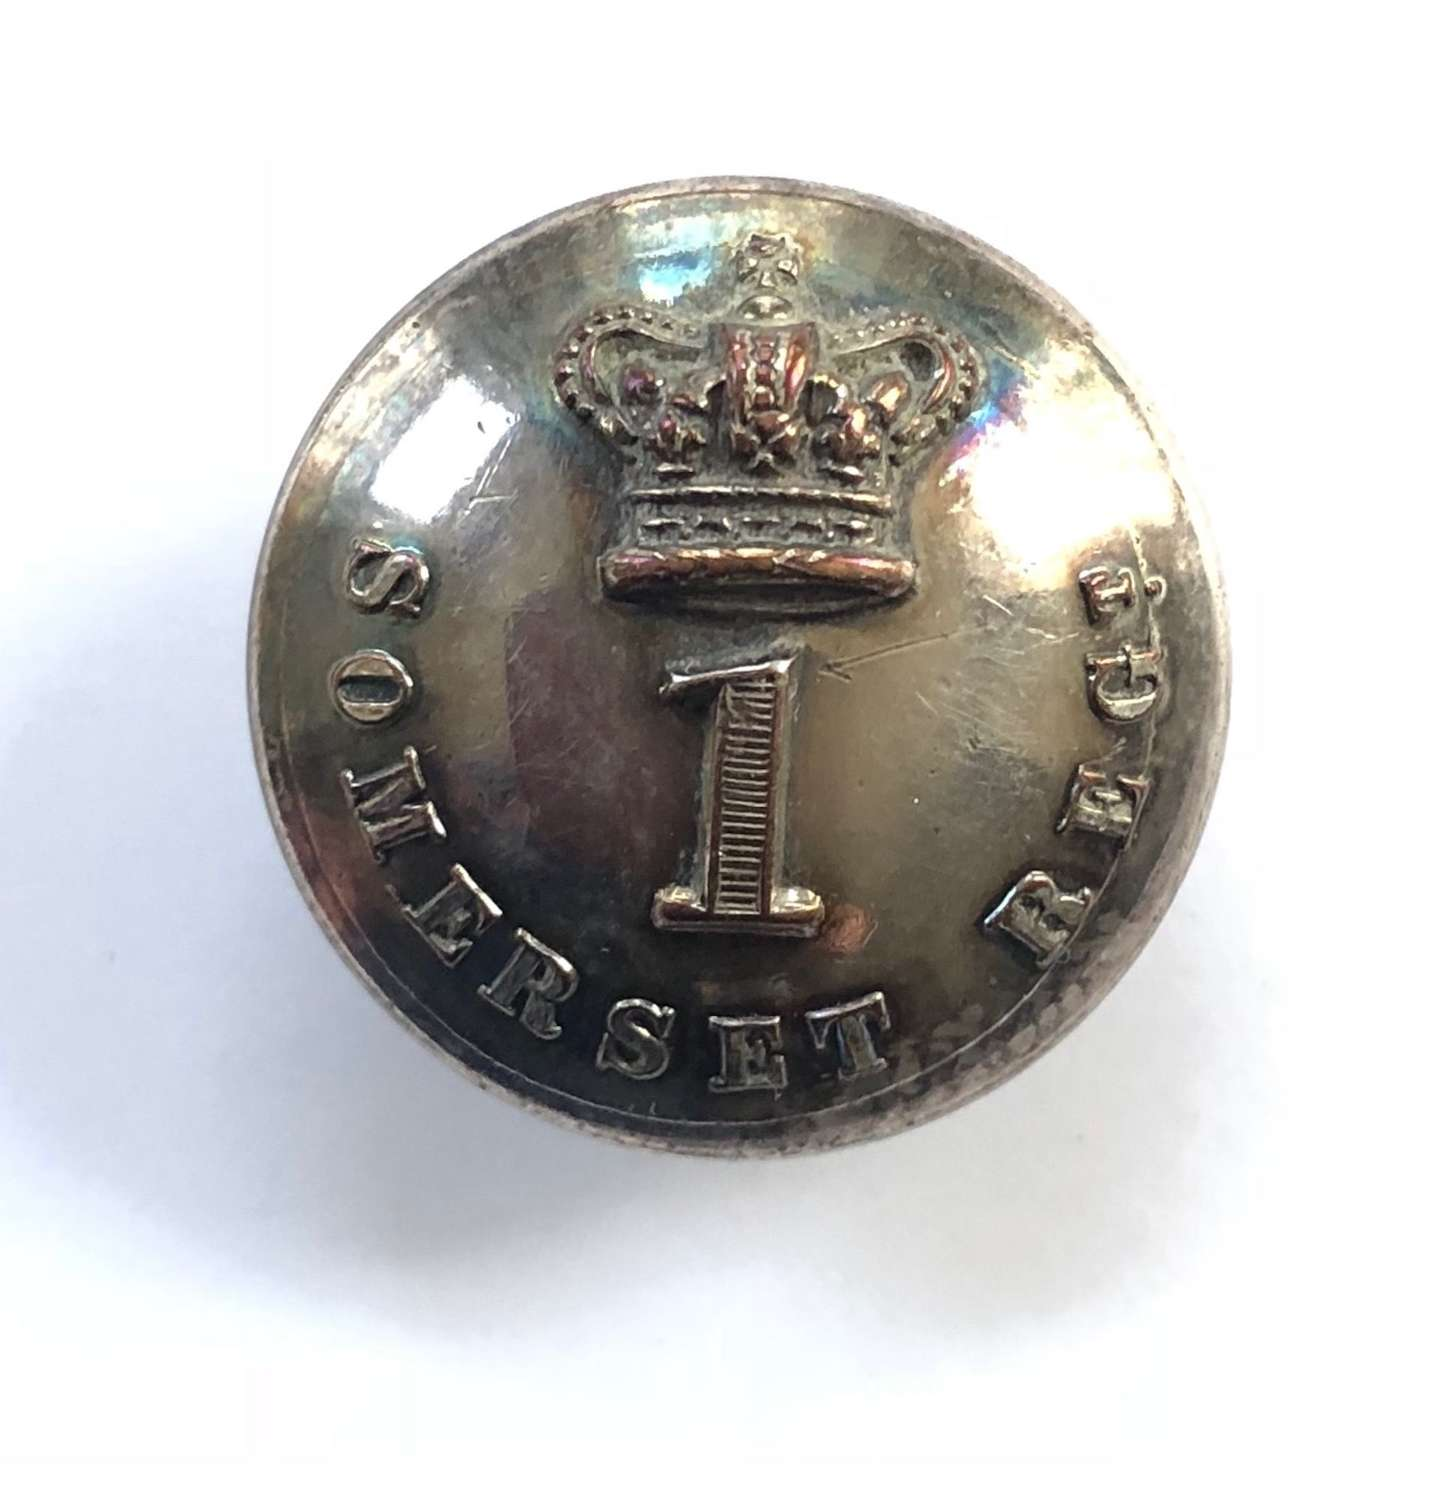 1st Somerset Militia Victorian Officer's coatee button